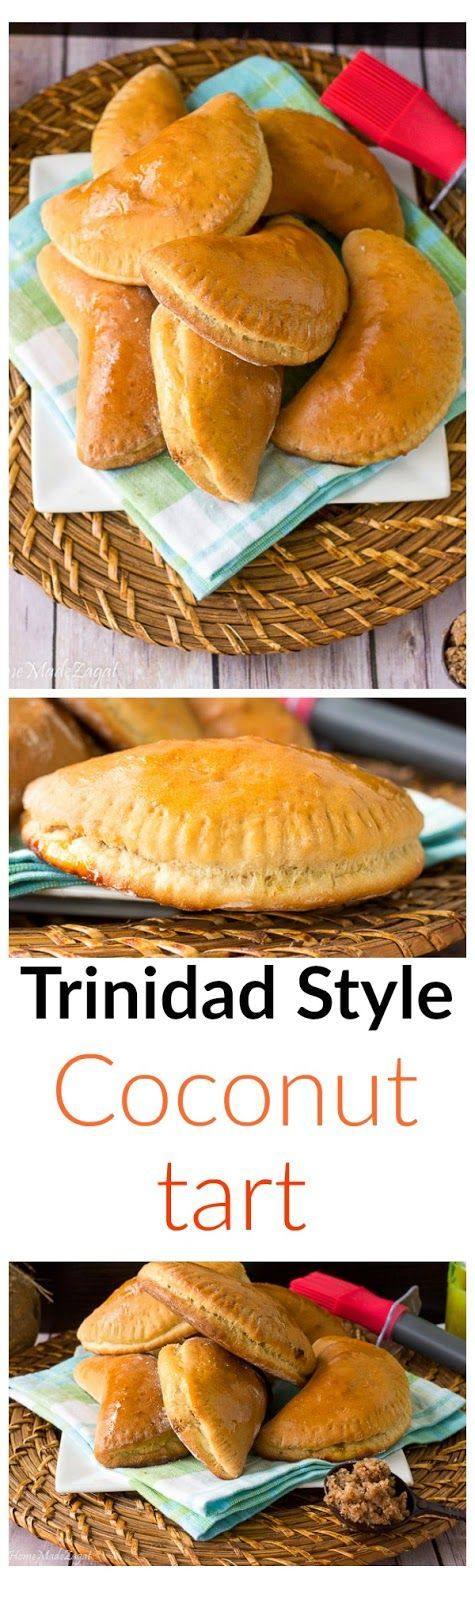 "Trinidad Style Coconut Tart - A common Trinidad and Tobago baked pastry stuffed with blended coconut ""stewed"" with additional spices like cinnamon, nutmeg and ginger. #Caribbean #Trinidad"